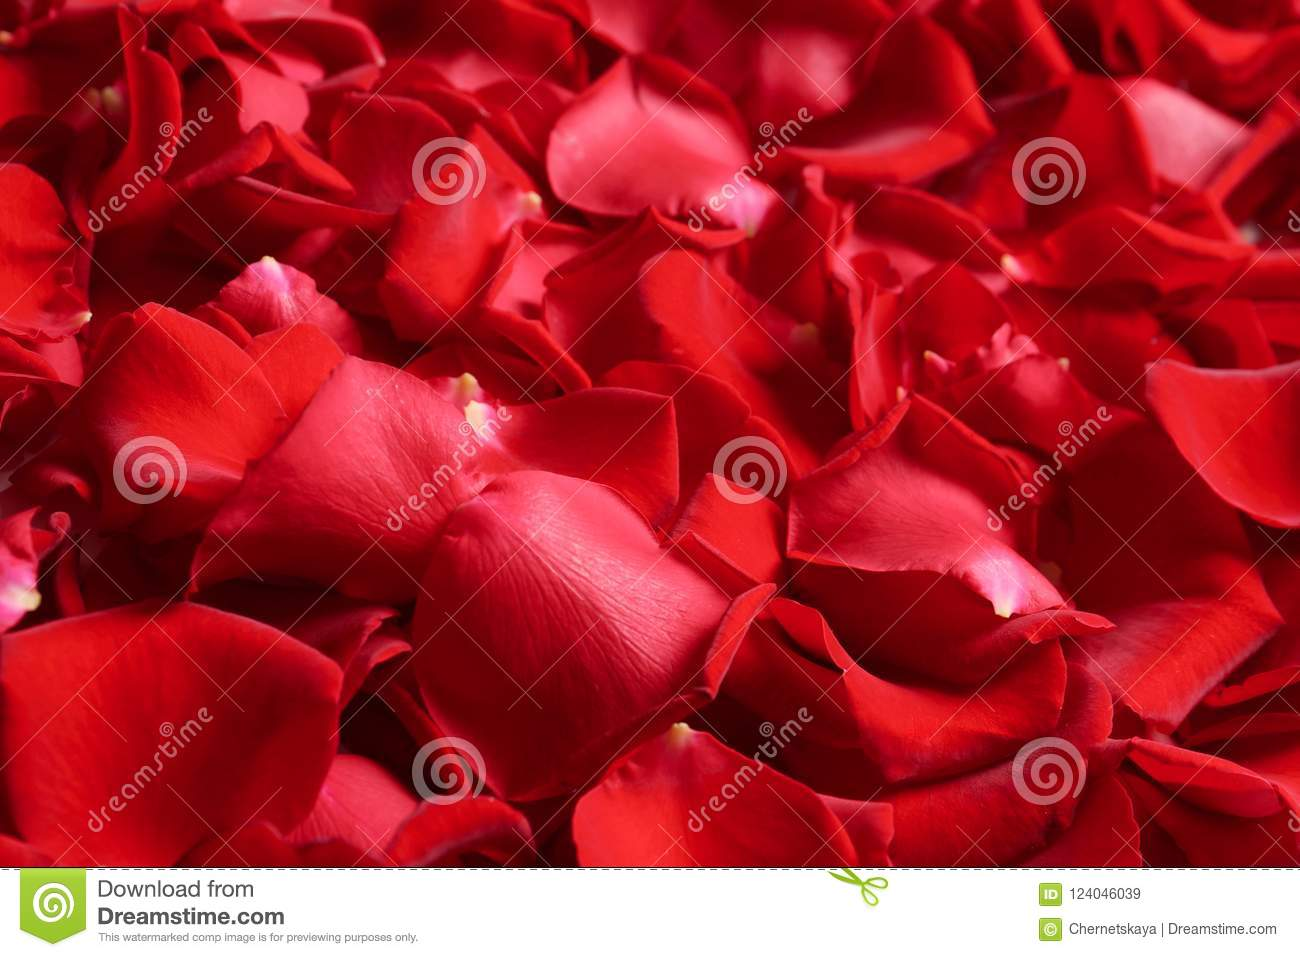 Beautiful red rose petals as background